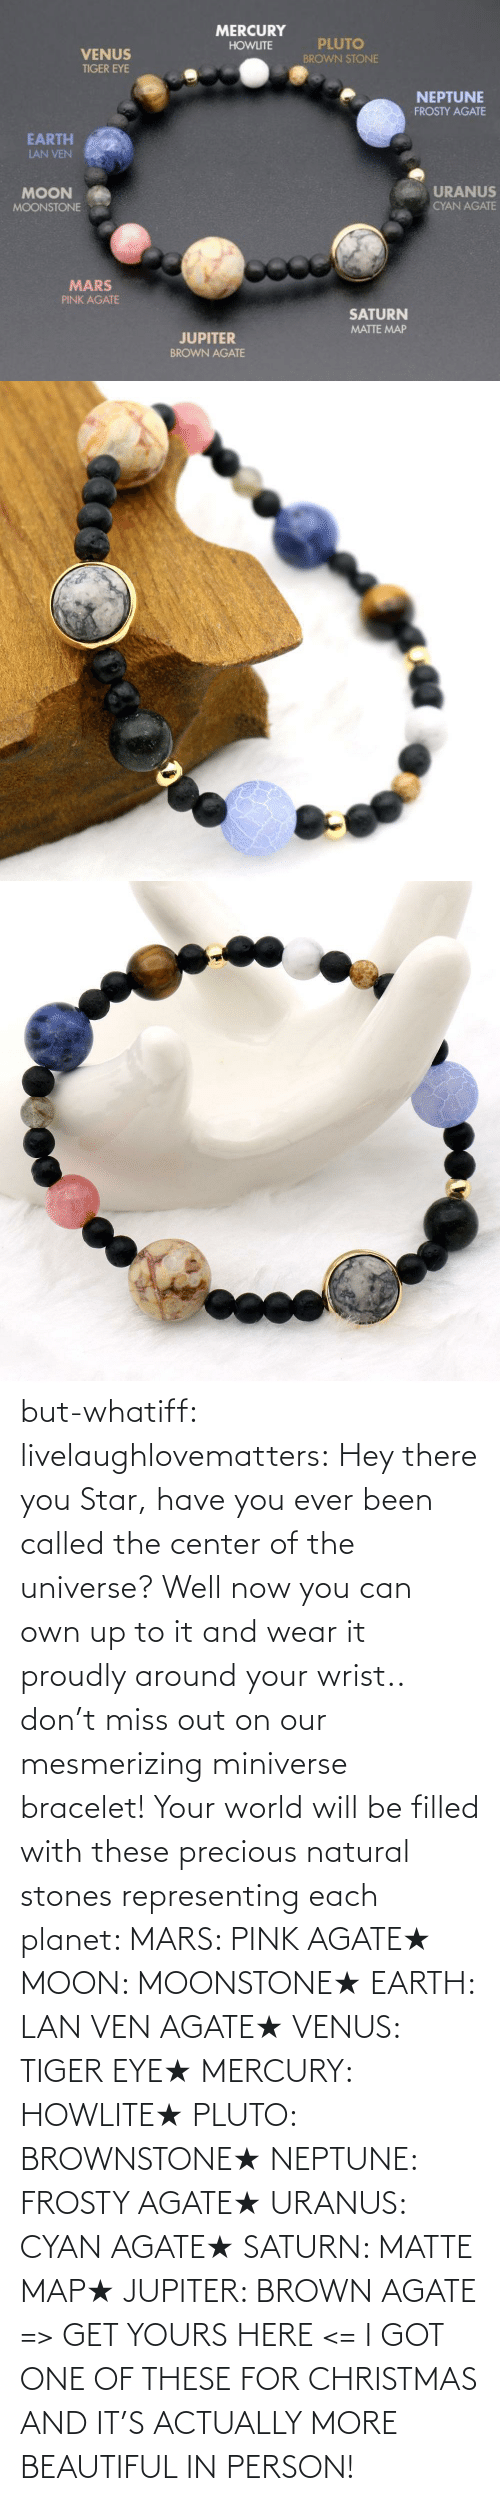 Center: but-whatiff:  livelaughlovematters:  Hey there you Star, have you ever been called the center of the universe? Well now you can own up to it and wear it proudly around your wrist.. don't miss out on our mesmerizing miniverse bracelet! Your world will be filled with these precious natural stones representing each planet:  MARS: PINK AGATE★ MOON: MOONSTONE★ EARTH: LAN VEN AGATE★ VENUS: TIGER EYE★ MERCURY: HOWLITE★ PLUTO: BROWNSTONE★ NEPTUNE: FROSTY AGATE★ URANUS: CYAN AGATE★ SATURN: MATTE MAP★ JUPITER: BROWN AGATE => GET YOURS HERE <=  I GOT ONE OF THESE FOR CHRISTMAS AND IT'S ACTUALLY MORE BEAUTIFUL IN PERSON!